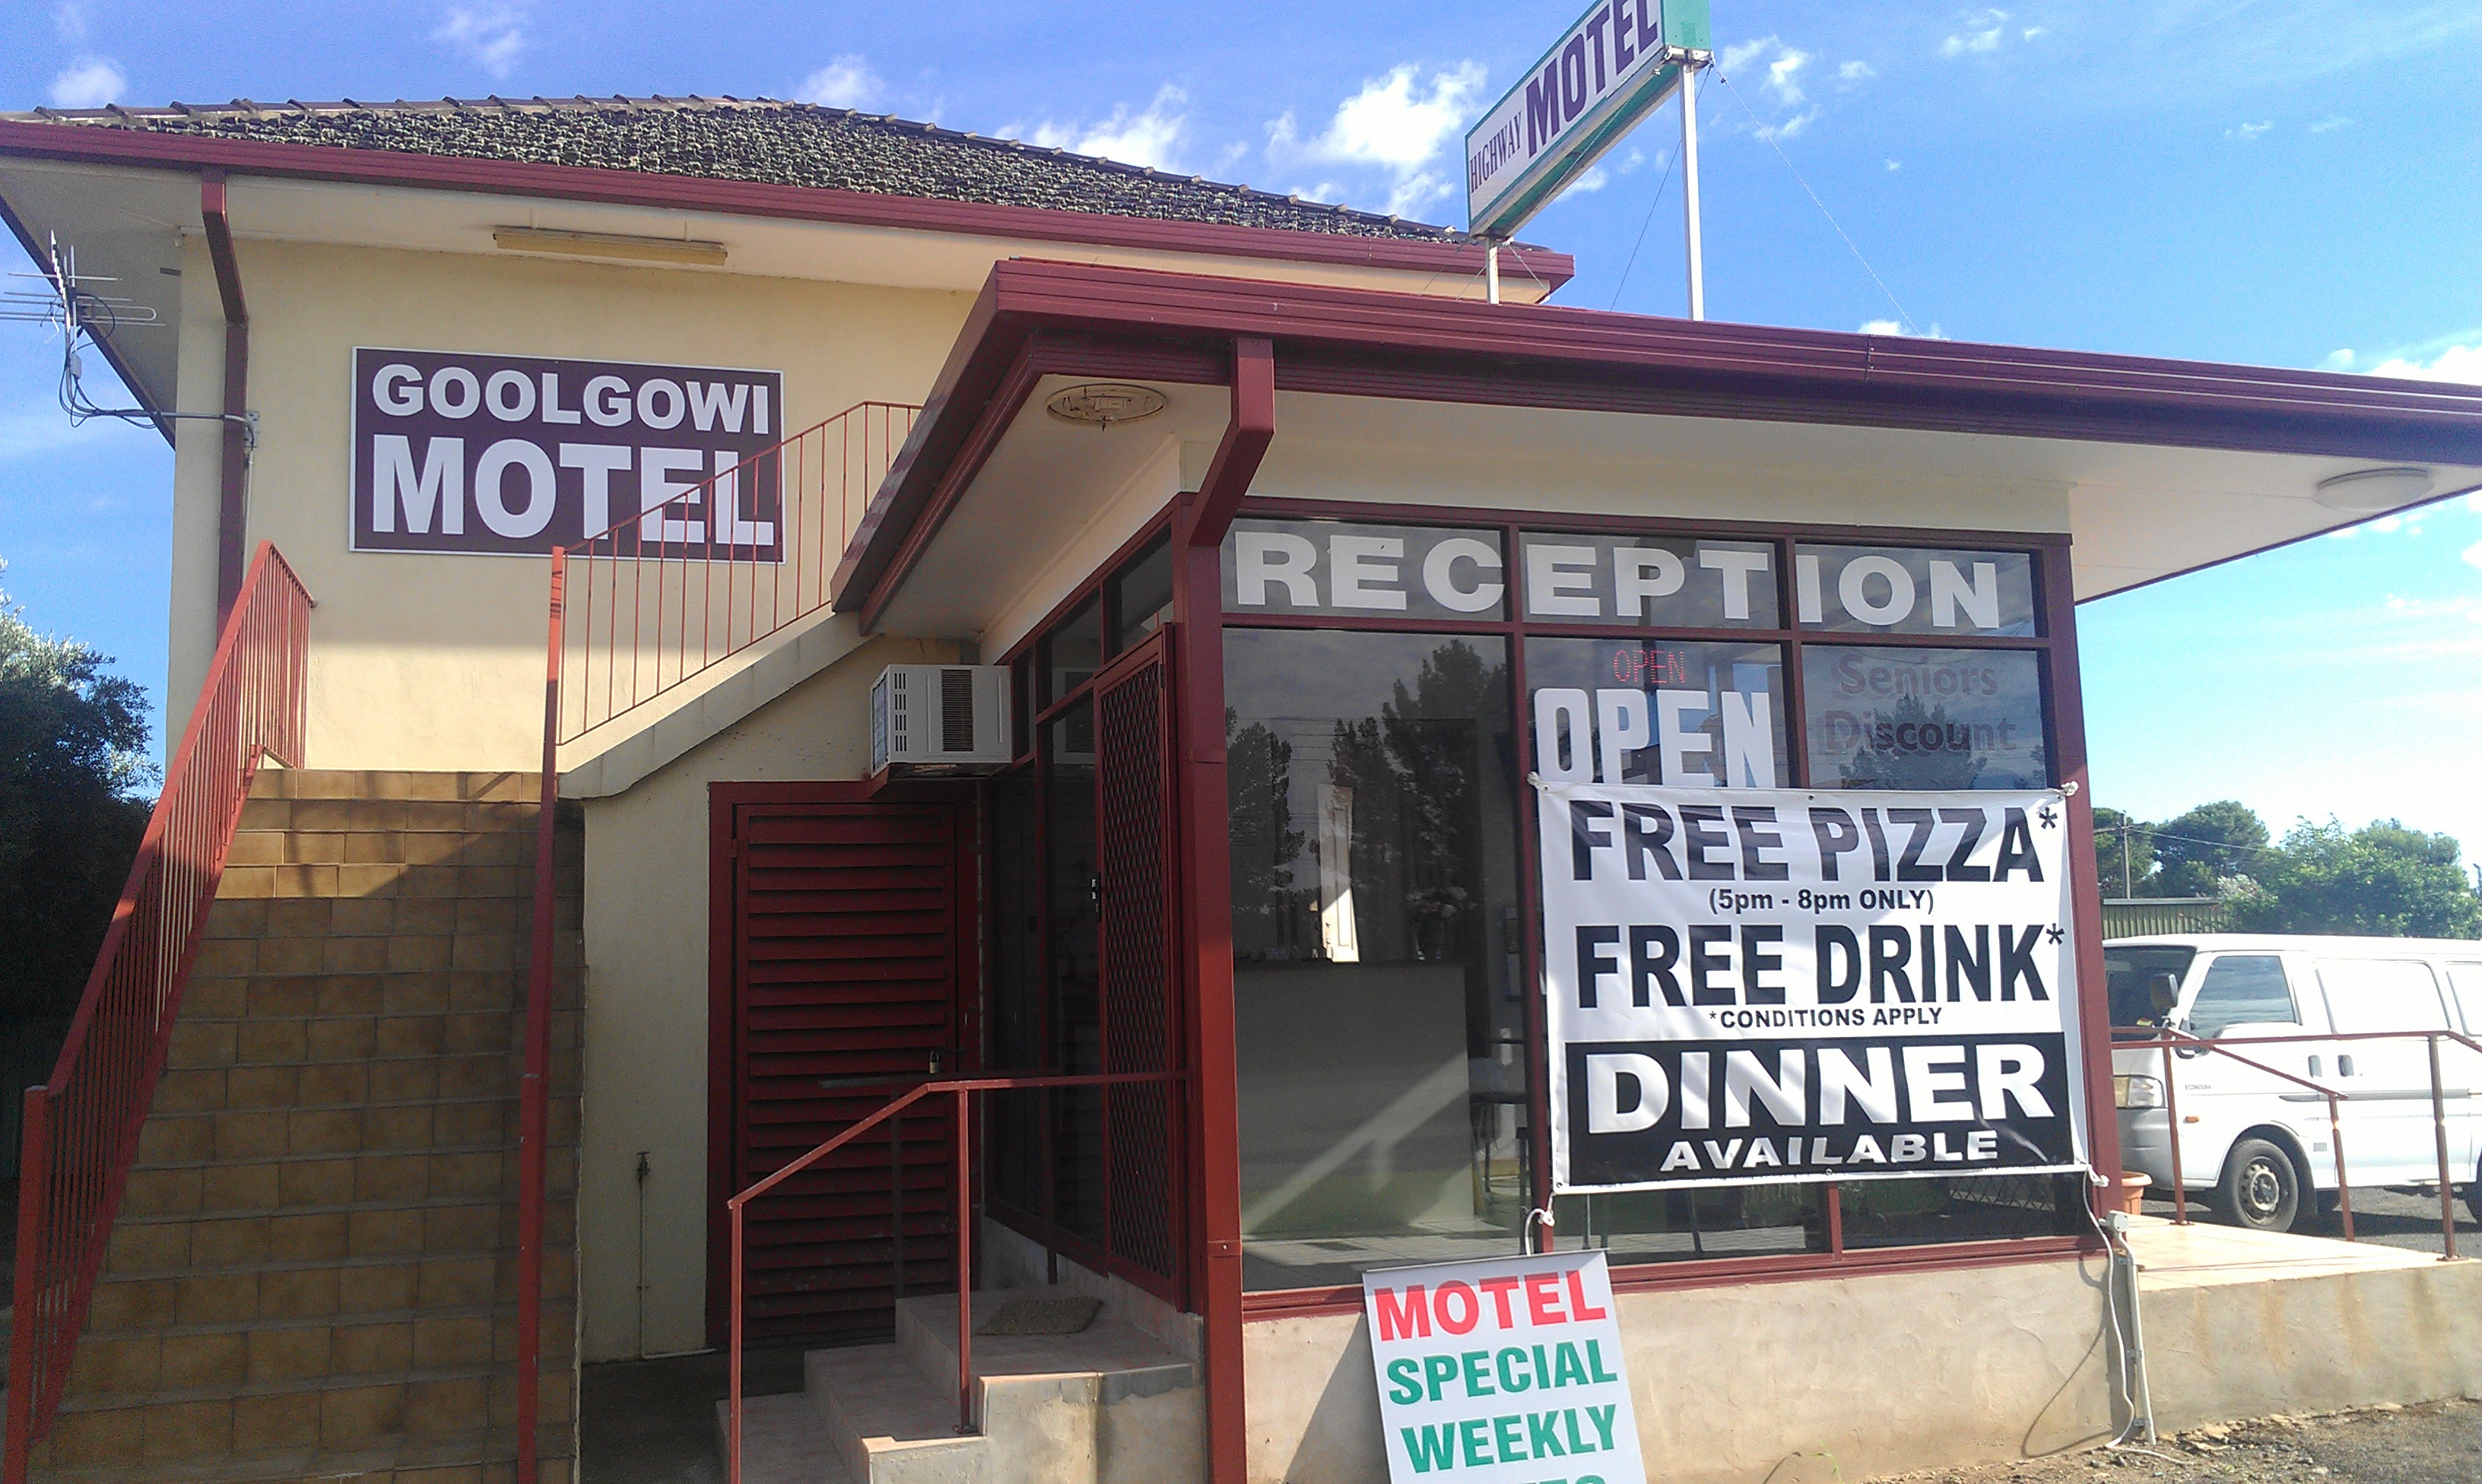 Royal Mail Hotel Goolgowi - eAccommodation